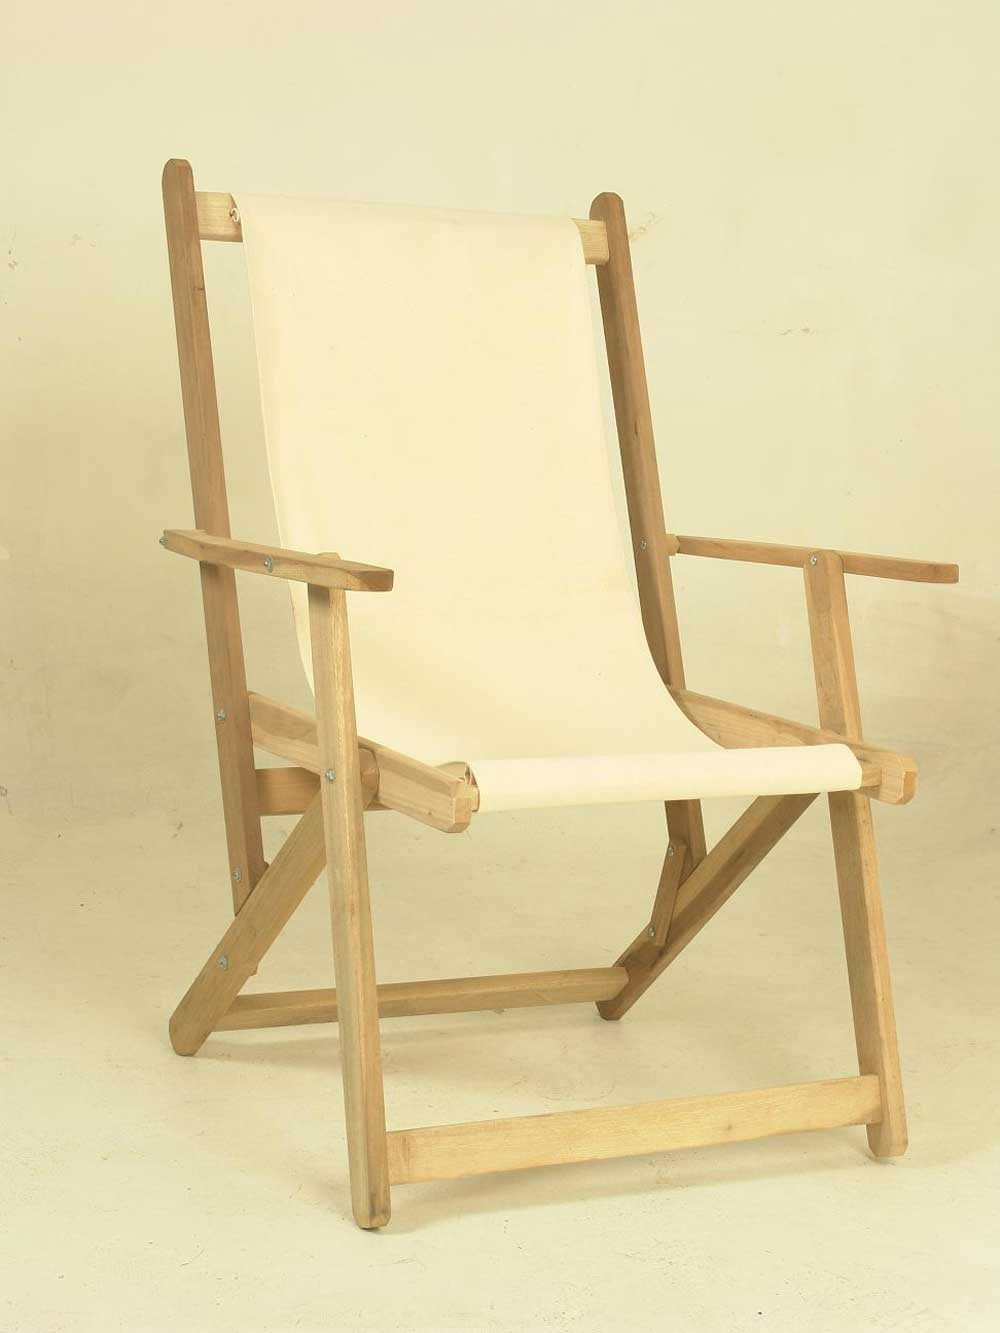 Solid Wood Parguayan Jatoba Folding Chair